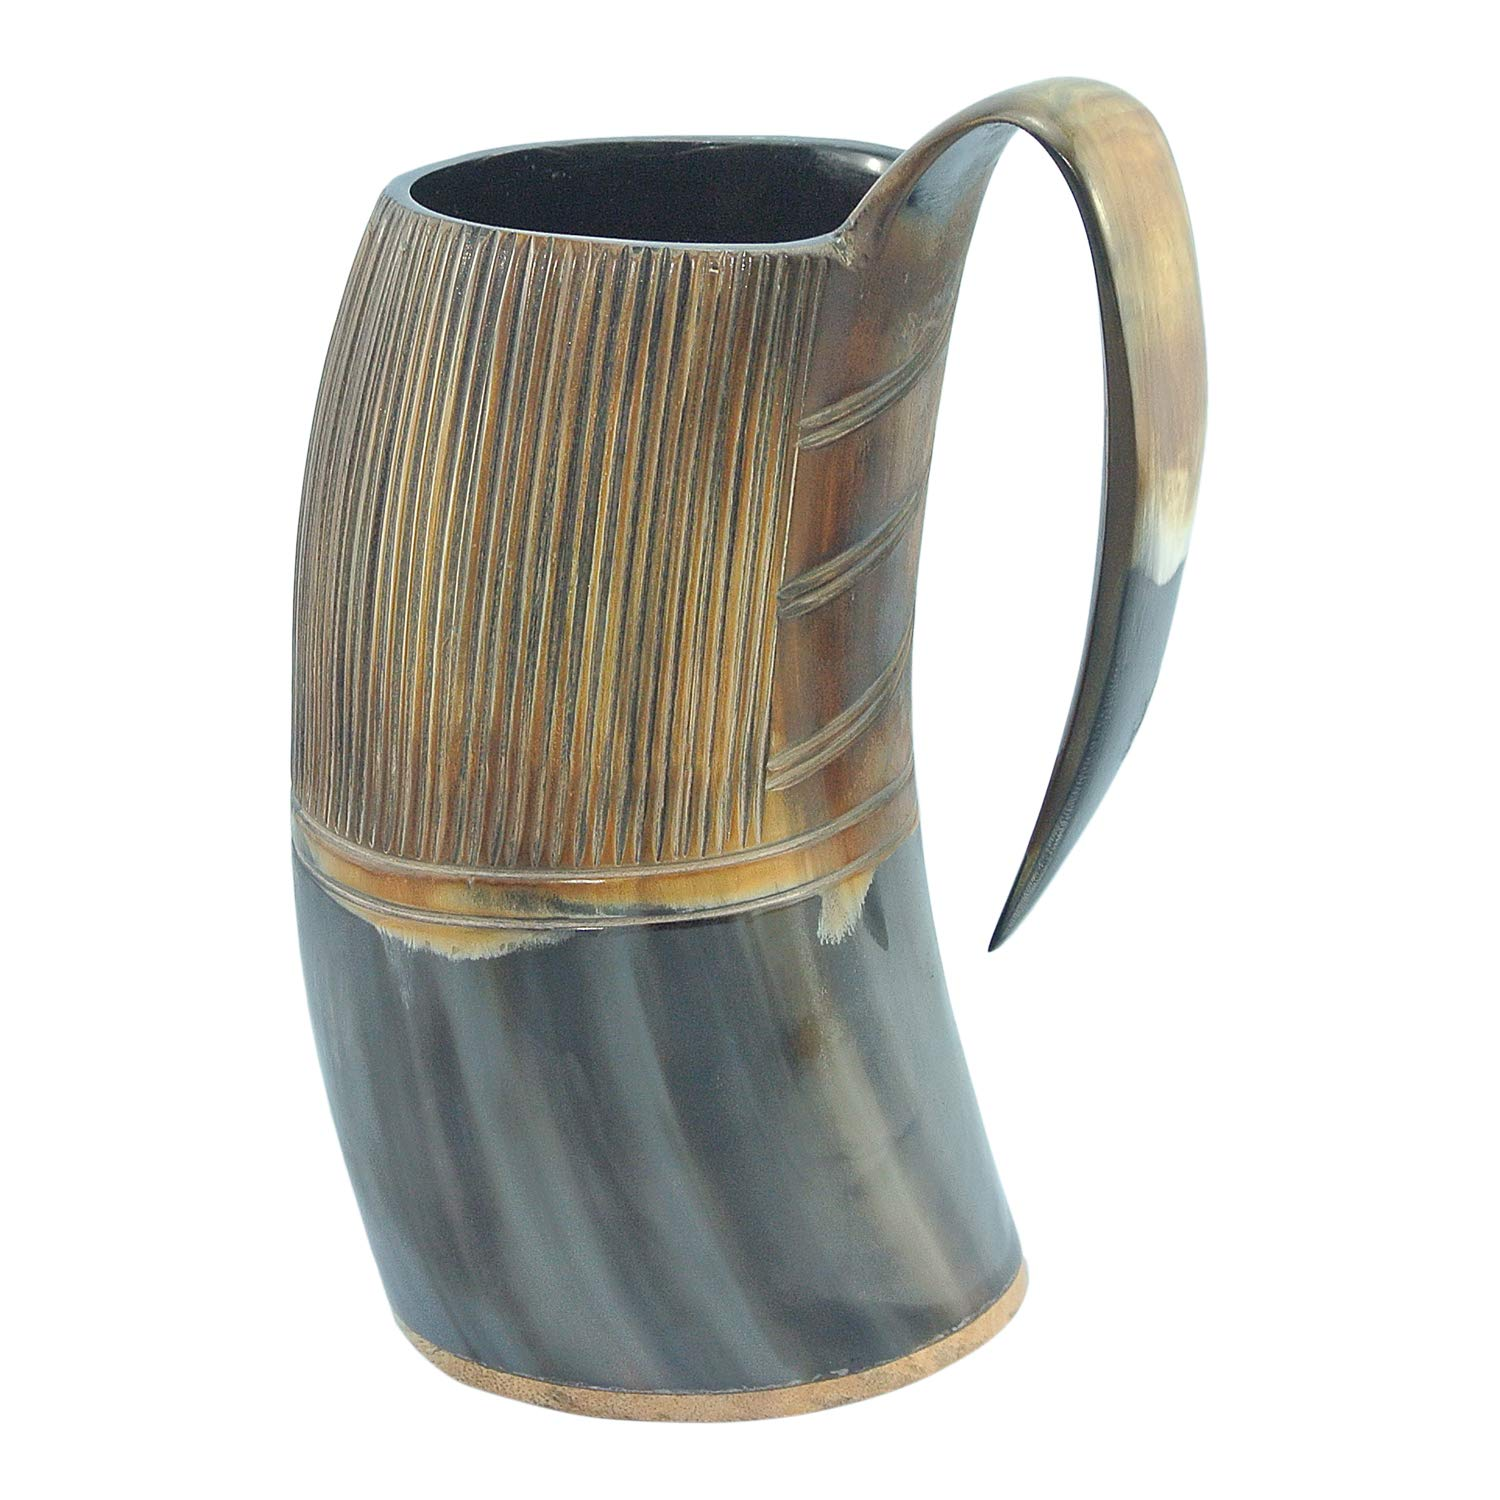 Mythrojan Viking Drinking Horn Tankard with Medieval Buckle leather strap Wine Beer Mead Mug 750 ML - Polished Finish